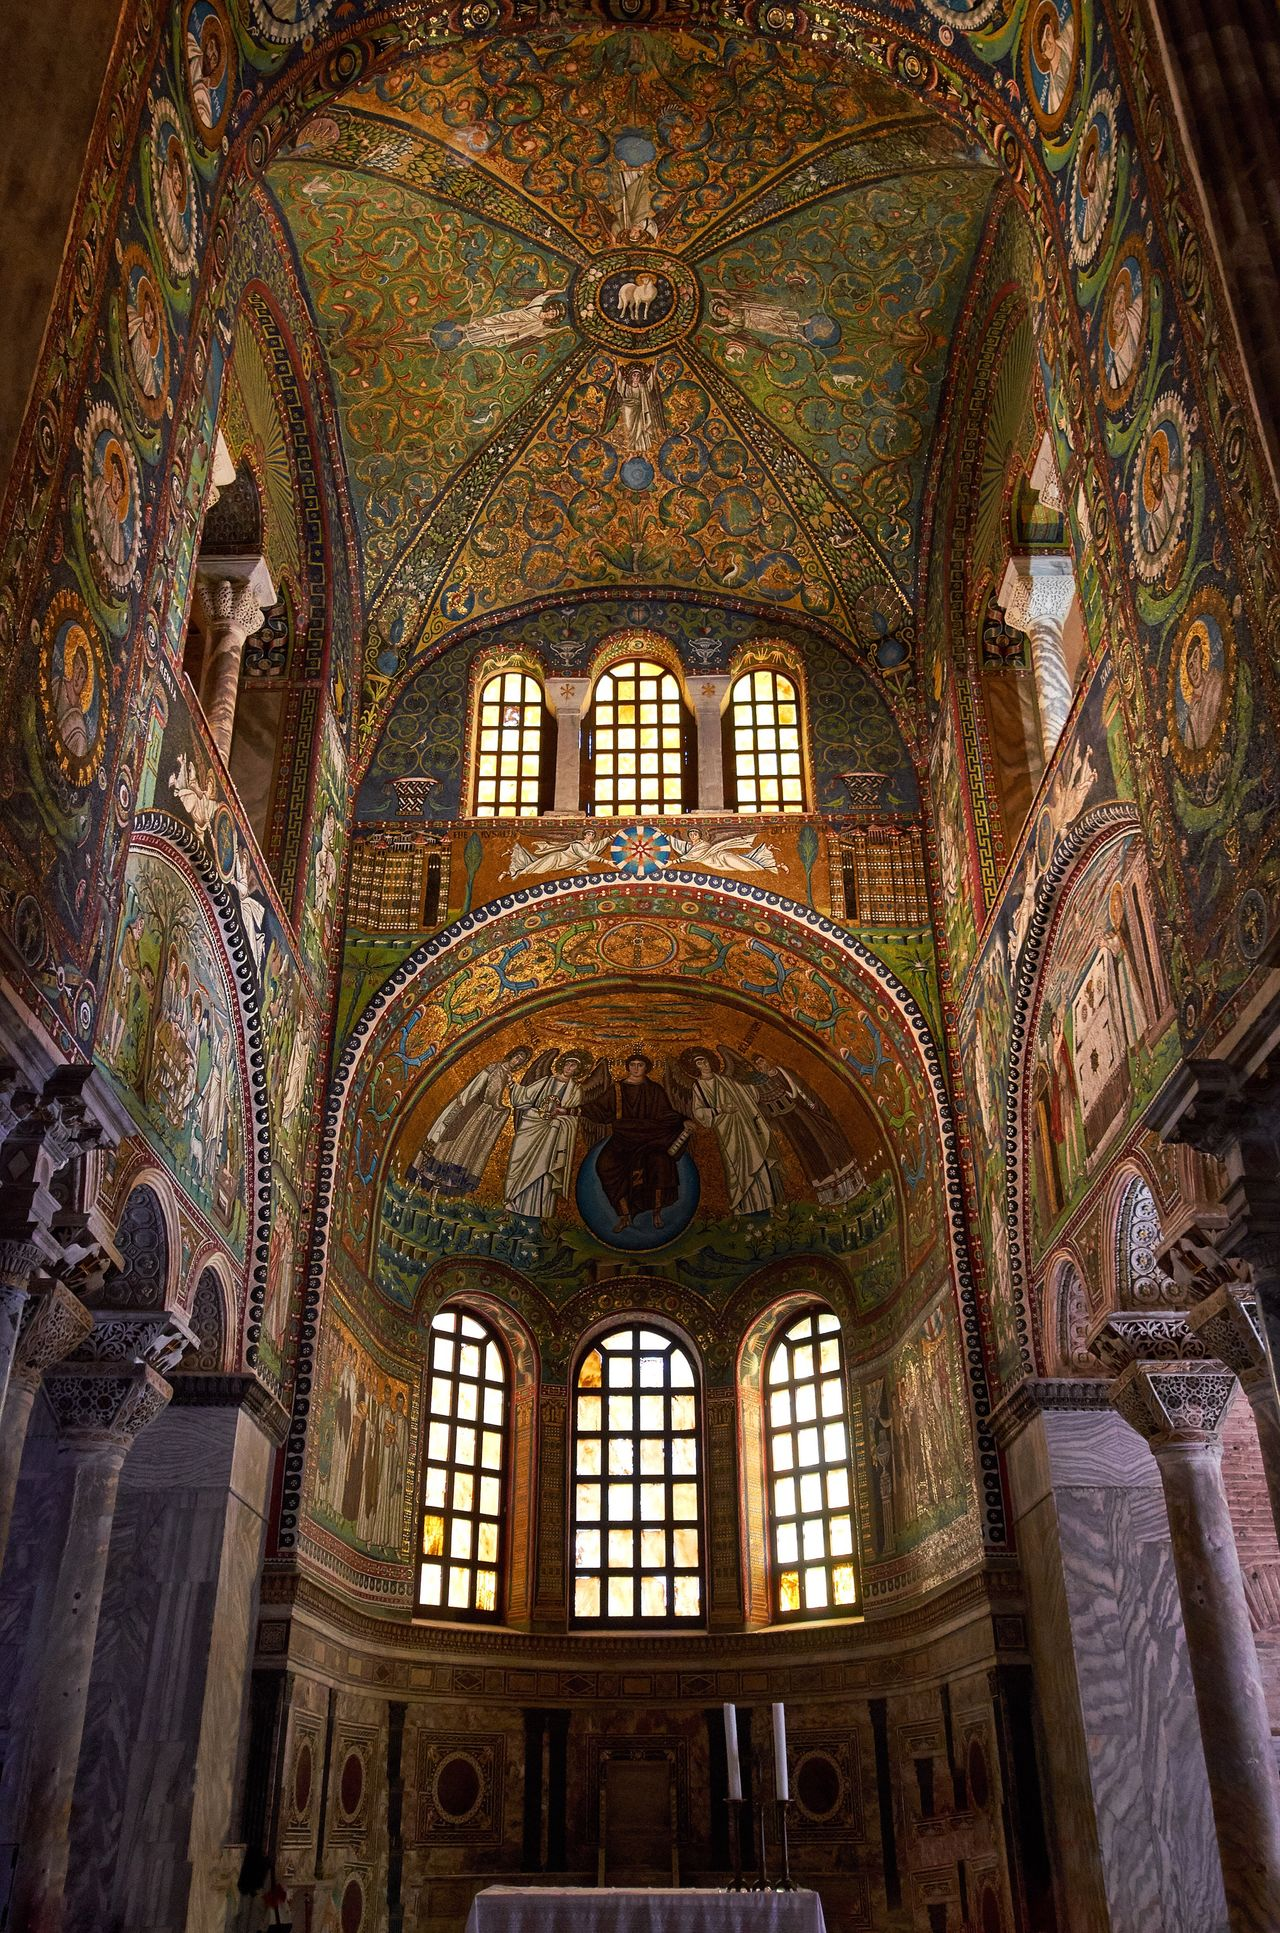 Basilica of San Vitale, Ravenna Lookingup Architecture And Art Indoors  Interior No People Byzantine Architecture Byzantine Medieval Architecture Medieval Architecture Historical Building Historic Catholic Place Of Worship Church San Vitale Basilica Italy Ravenna Low Angle View World Heritage Religious Architecture Ceiling Travel Destinations Fresco